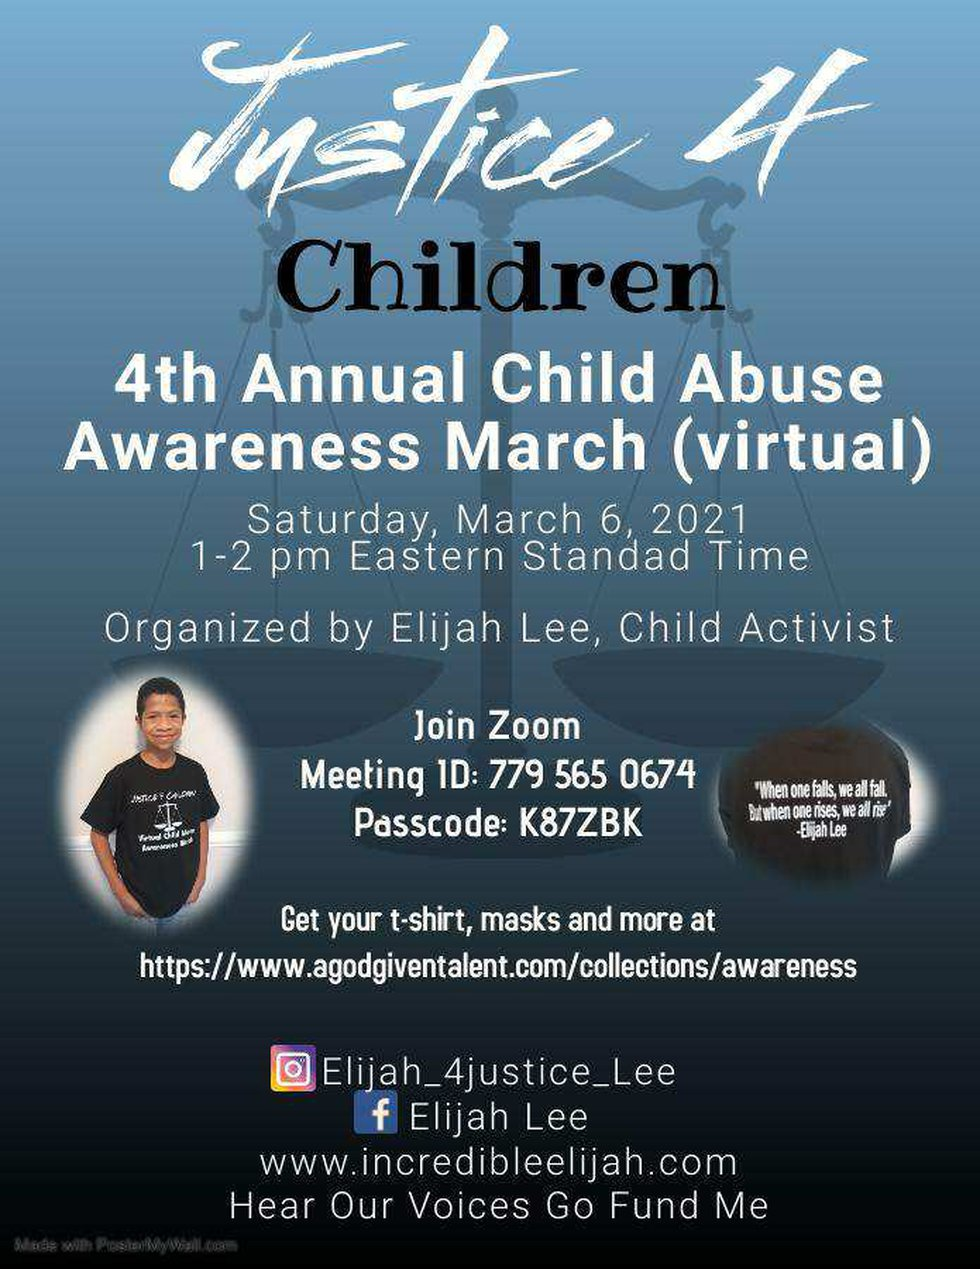 Elijah Lee's 4th Annual Child Abuse Awareness March will take place virtually in 2021